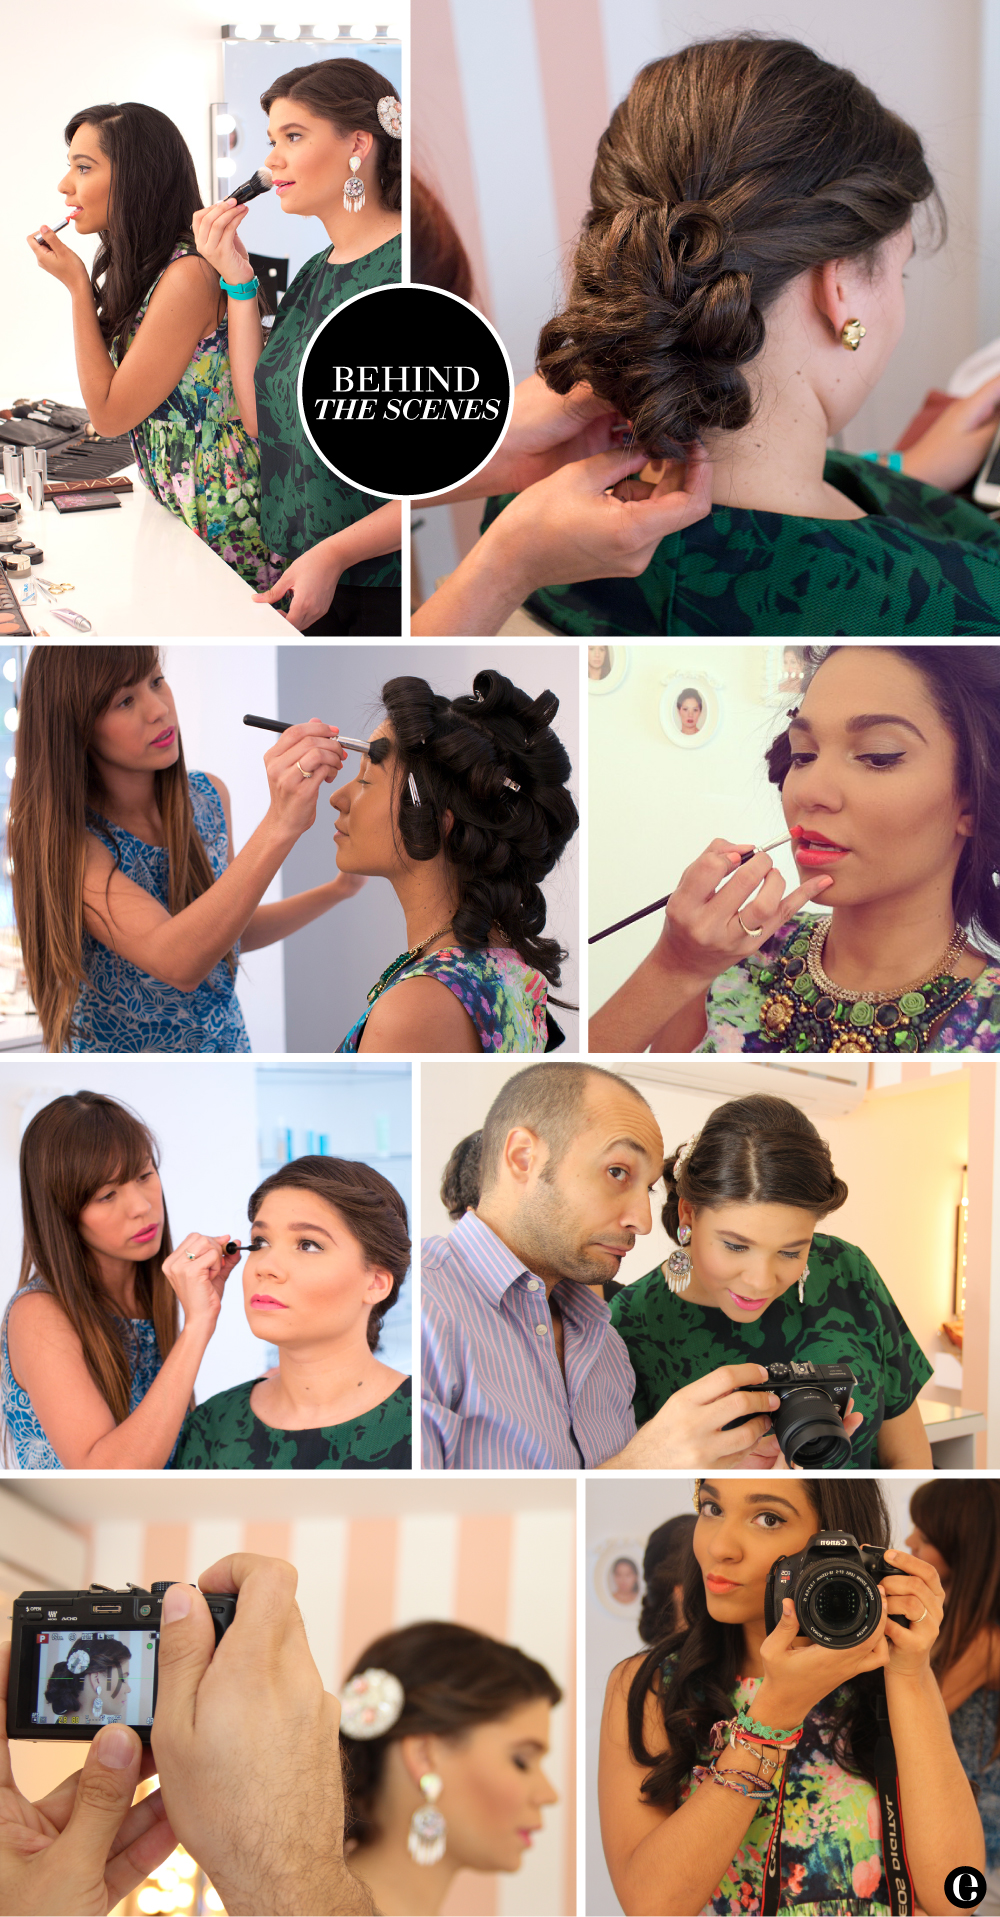 Behind the scenes_Lash-01